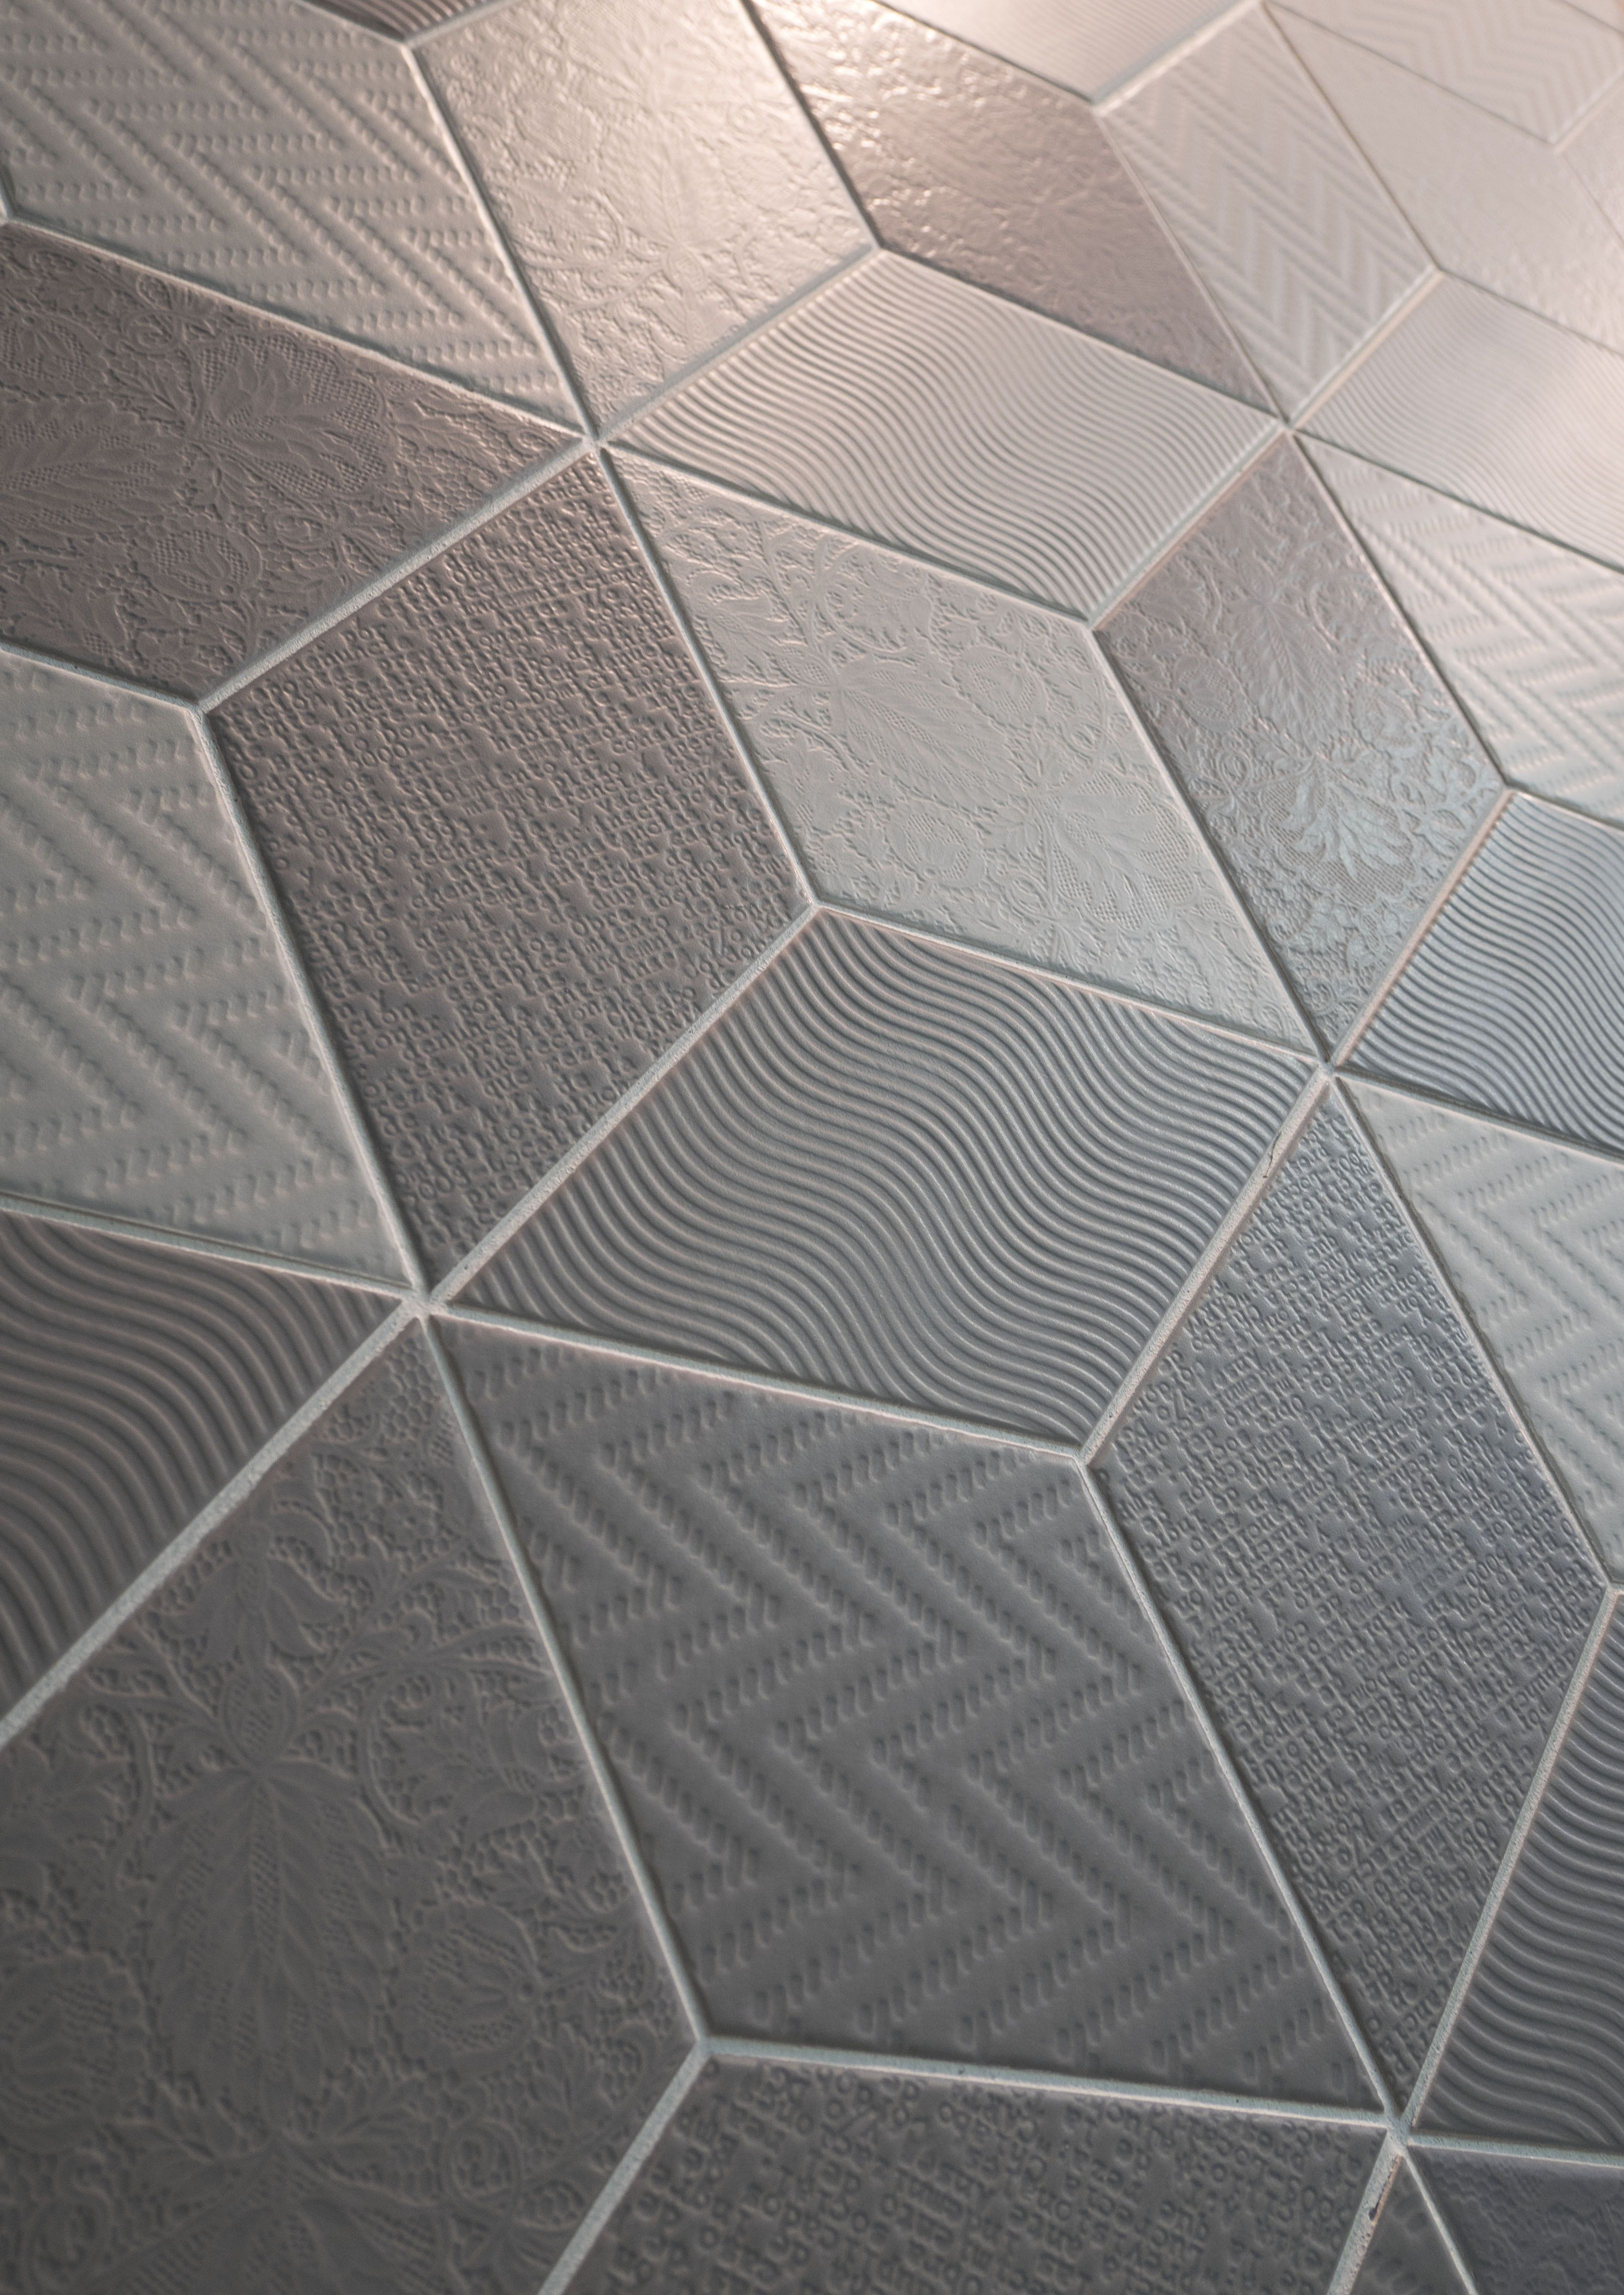 - Pin By Supreesin Deawwanit On Home In 2020 Textured Tile